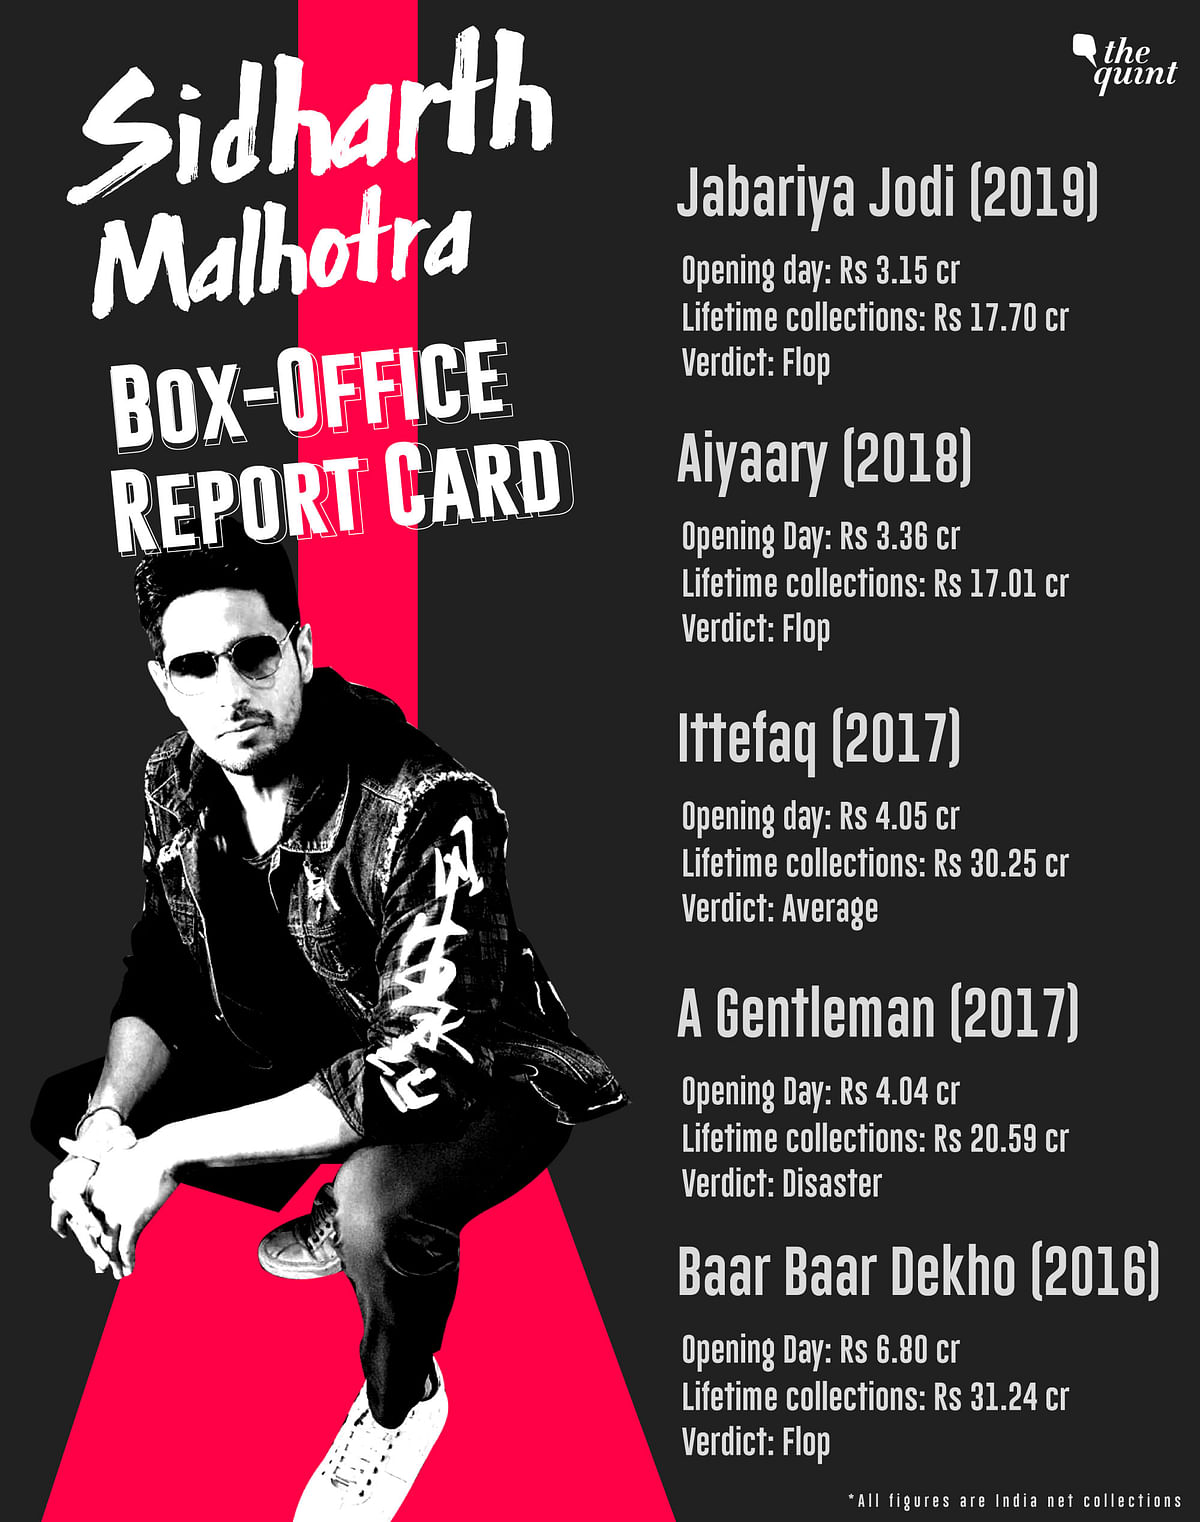 Sidharth Malhotra's last five releases have failed to make a mark at the box-office.